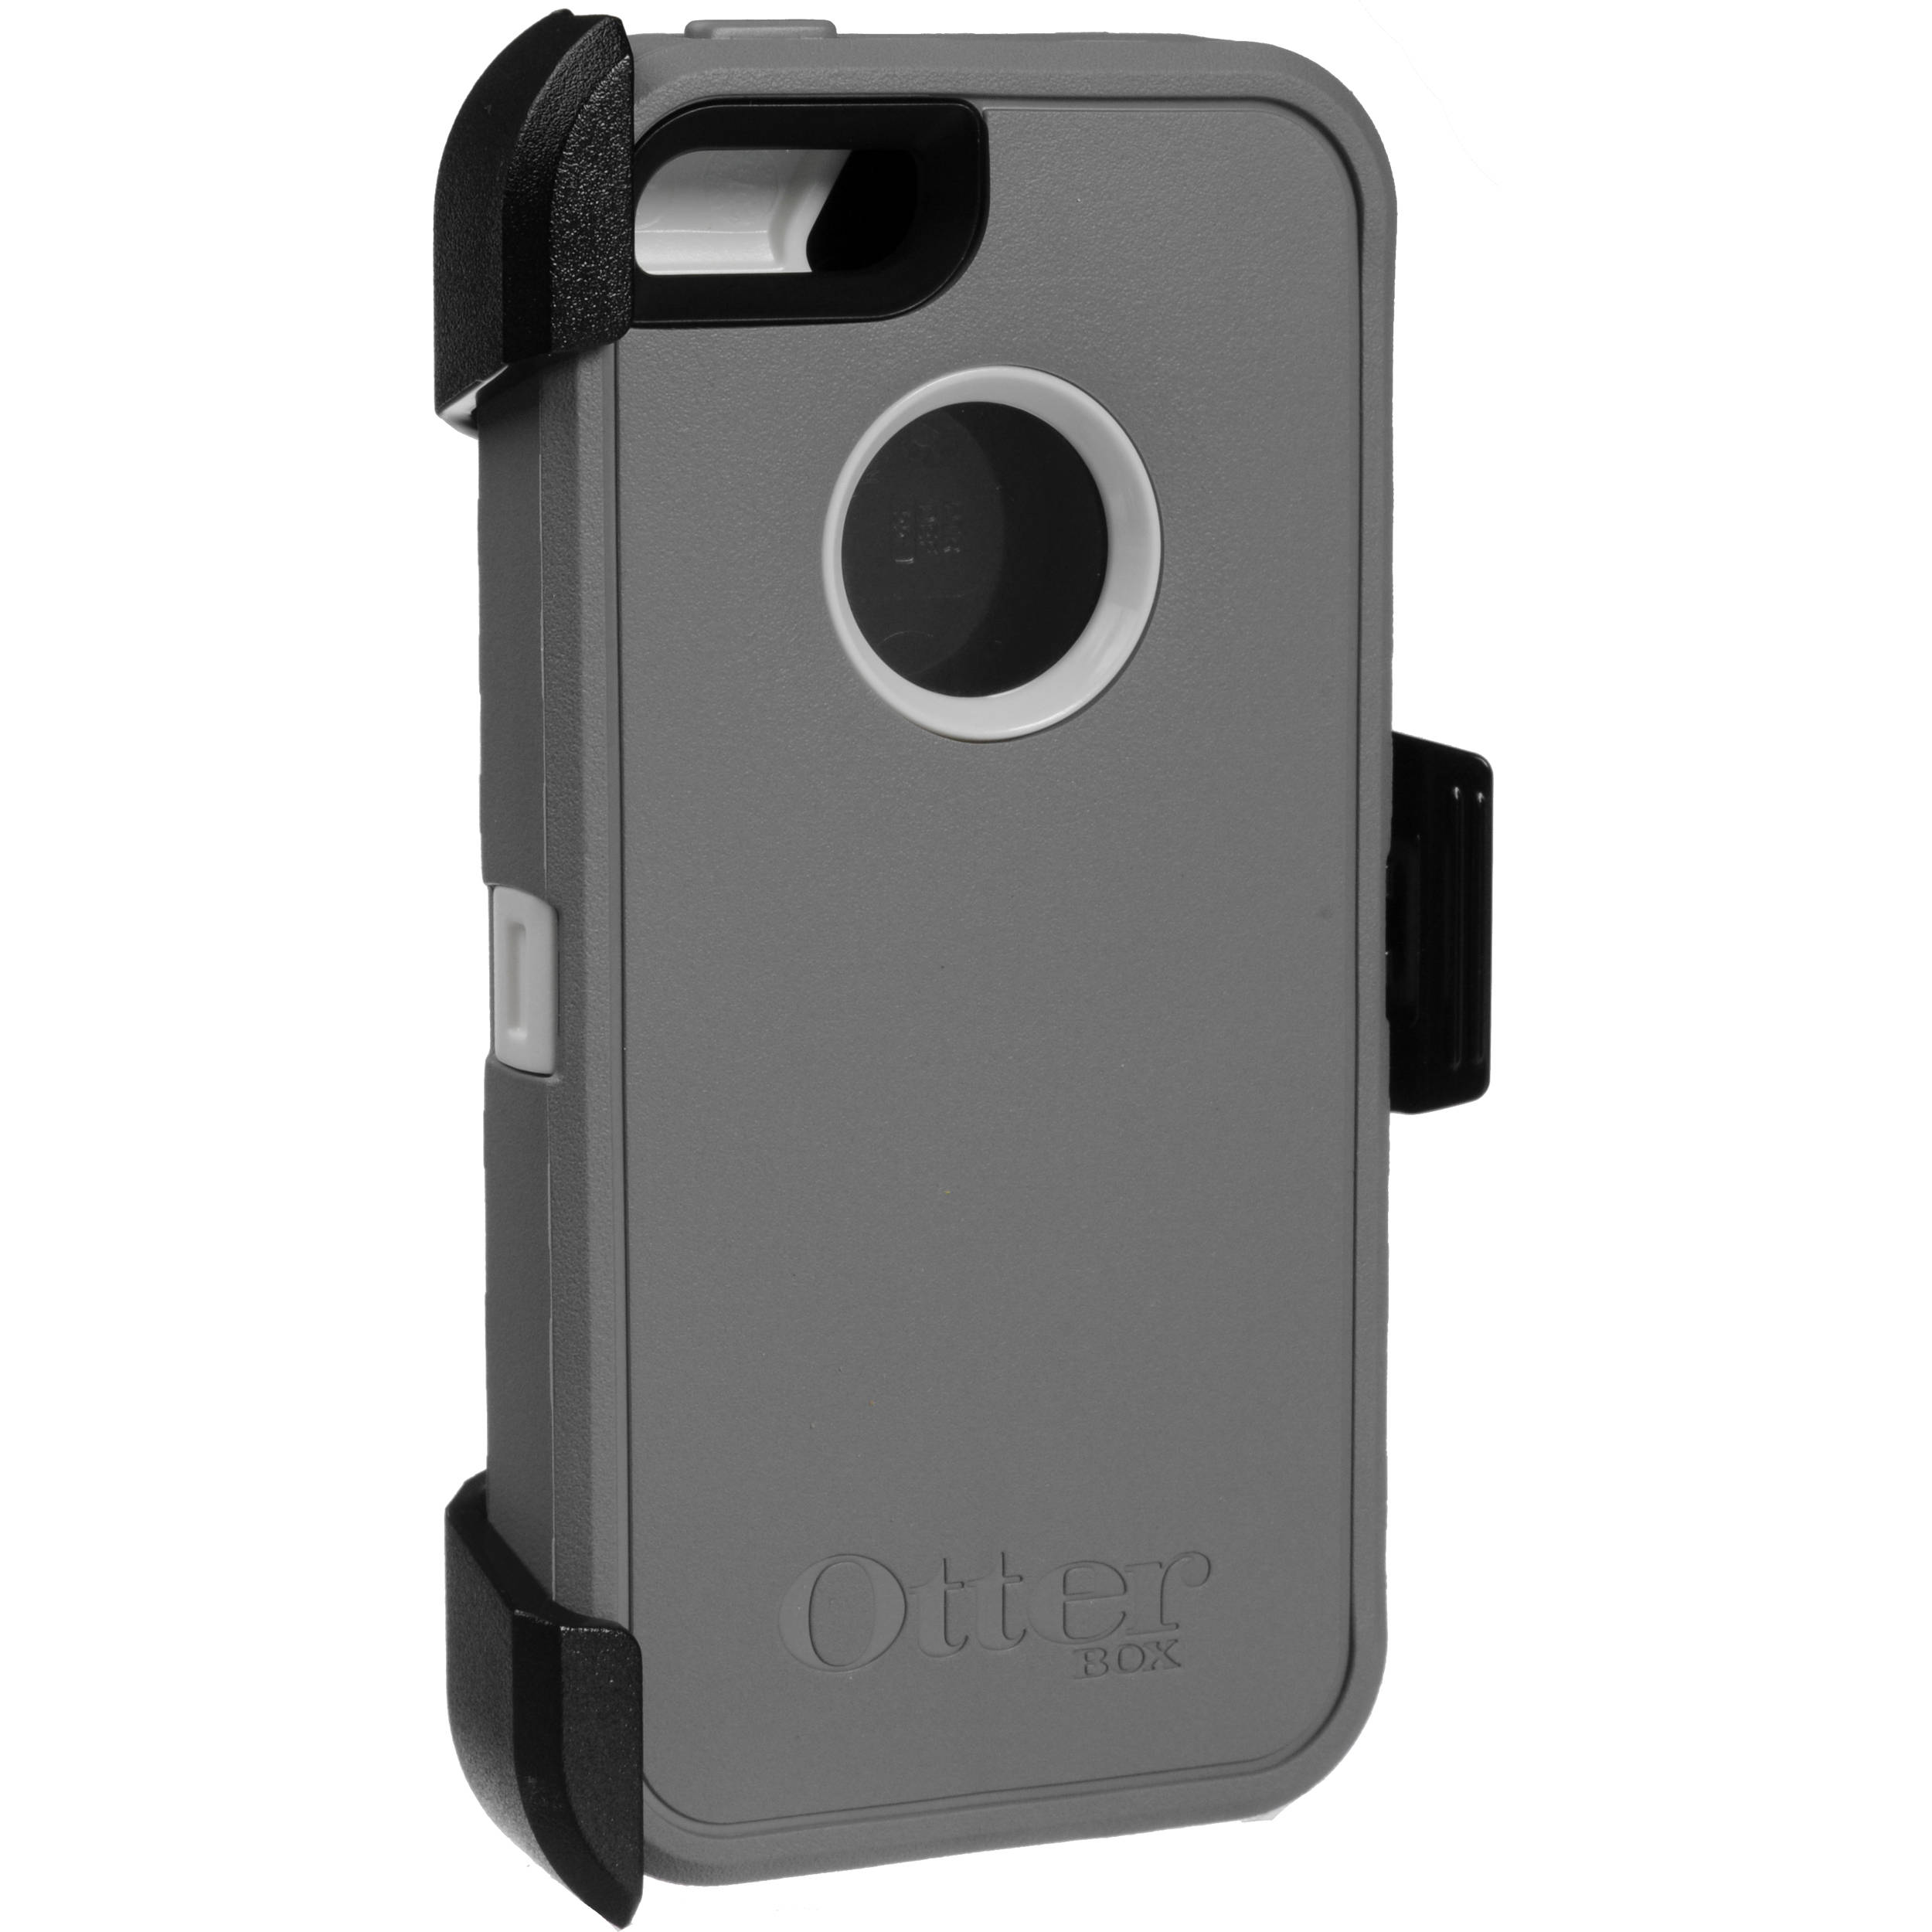 iphone 5 otterbox cases otterbox defender series for iphone 5 5s se 77 33324 b amp h 9488